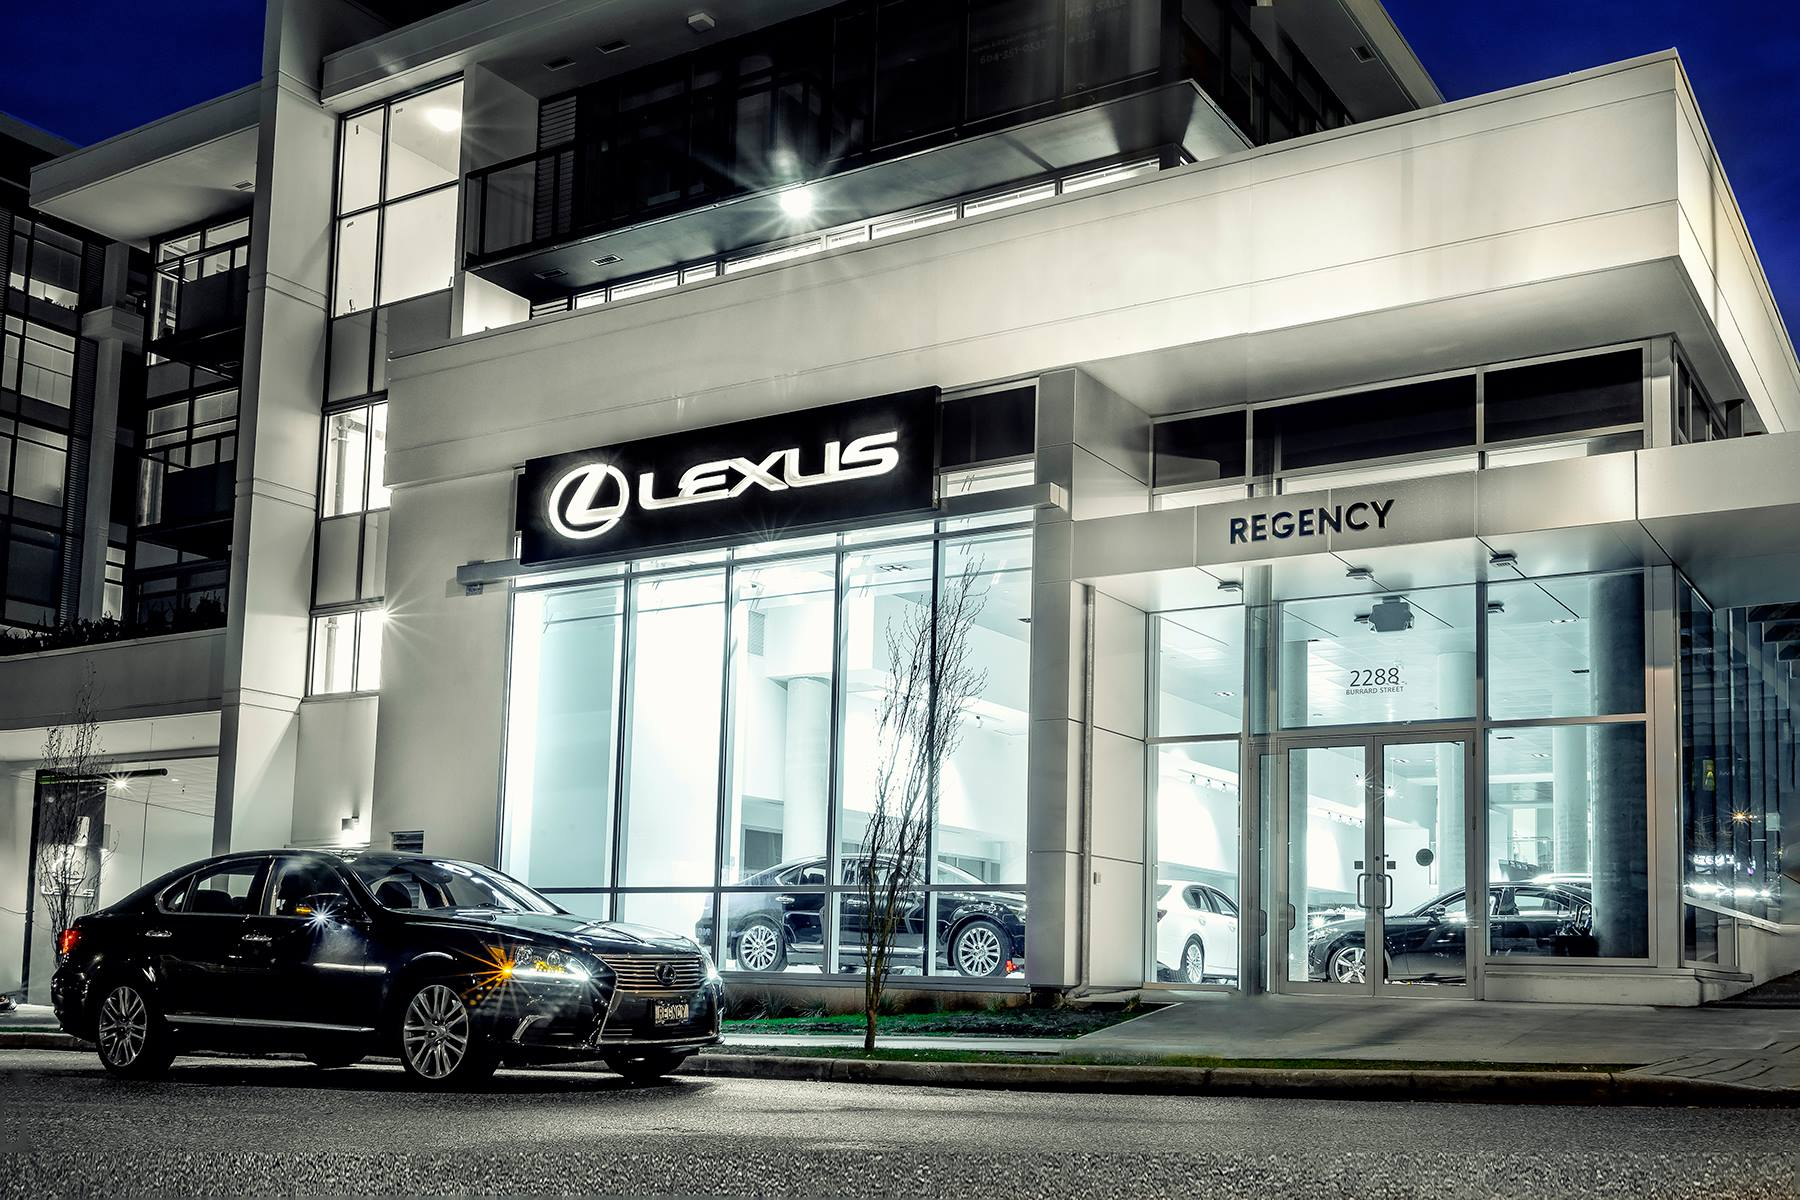 About Regency Lexus